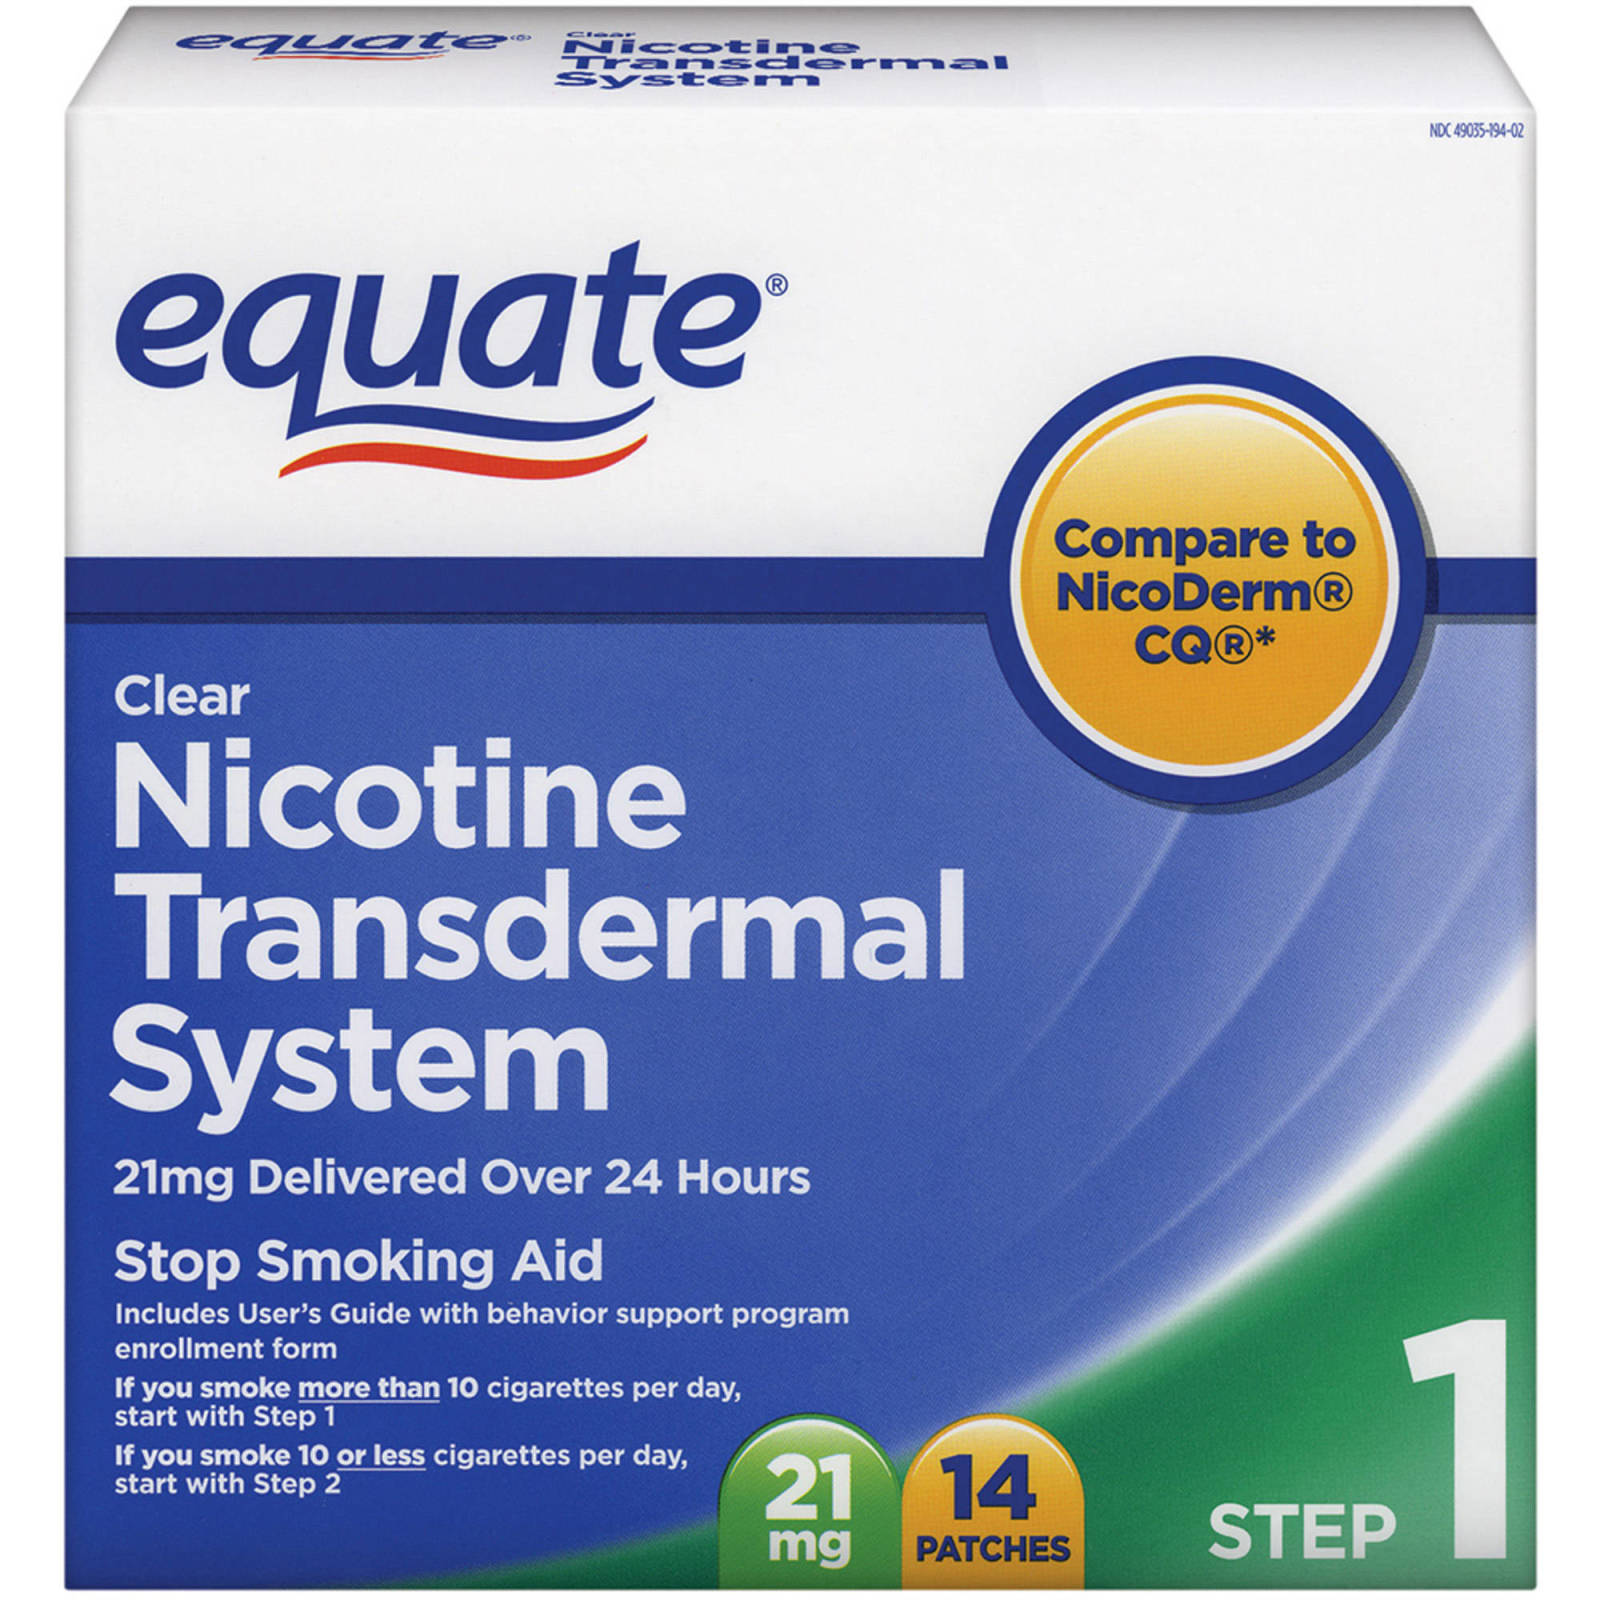 Equate Nicotine Transdermal Patches Patch Smoking Free Non Cigarette Stop 681131187381 Ebay